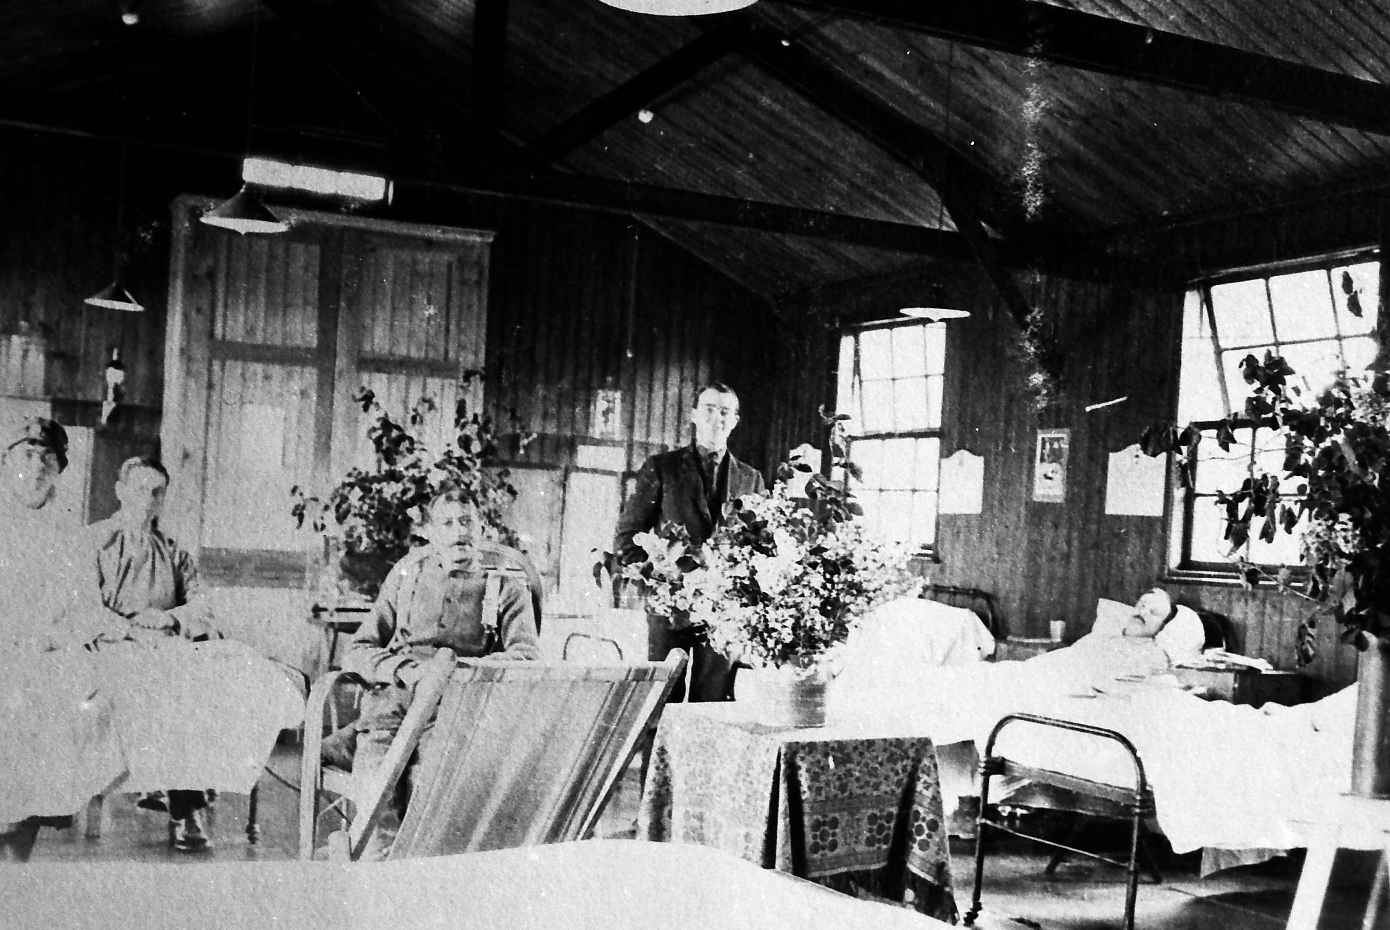 Images from the Goodland collection of the early days of the IWGC - scanned and enhanced by Chris Lofty from Negatives held in Media section of the CWGC; Patients in a Hospital